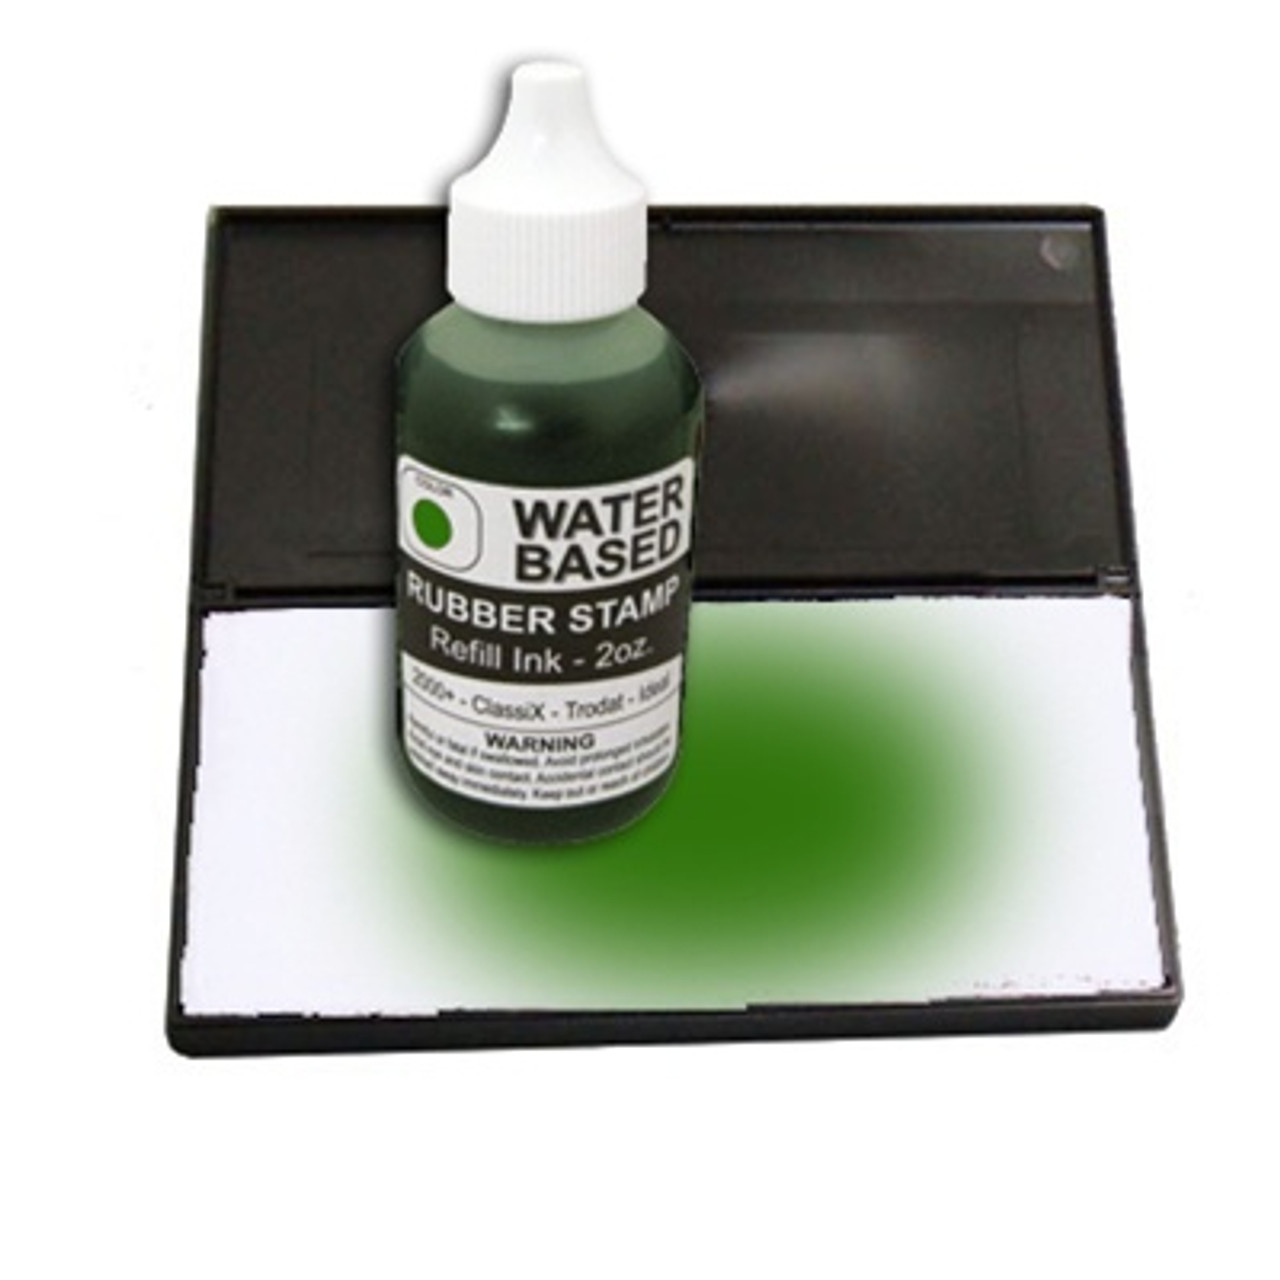 Dry stamp pad with green ink bottle